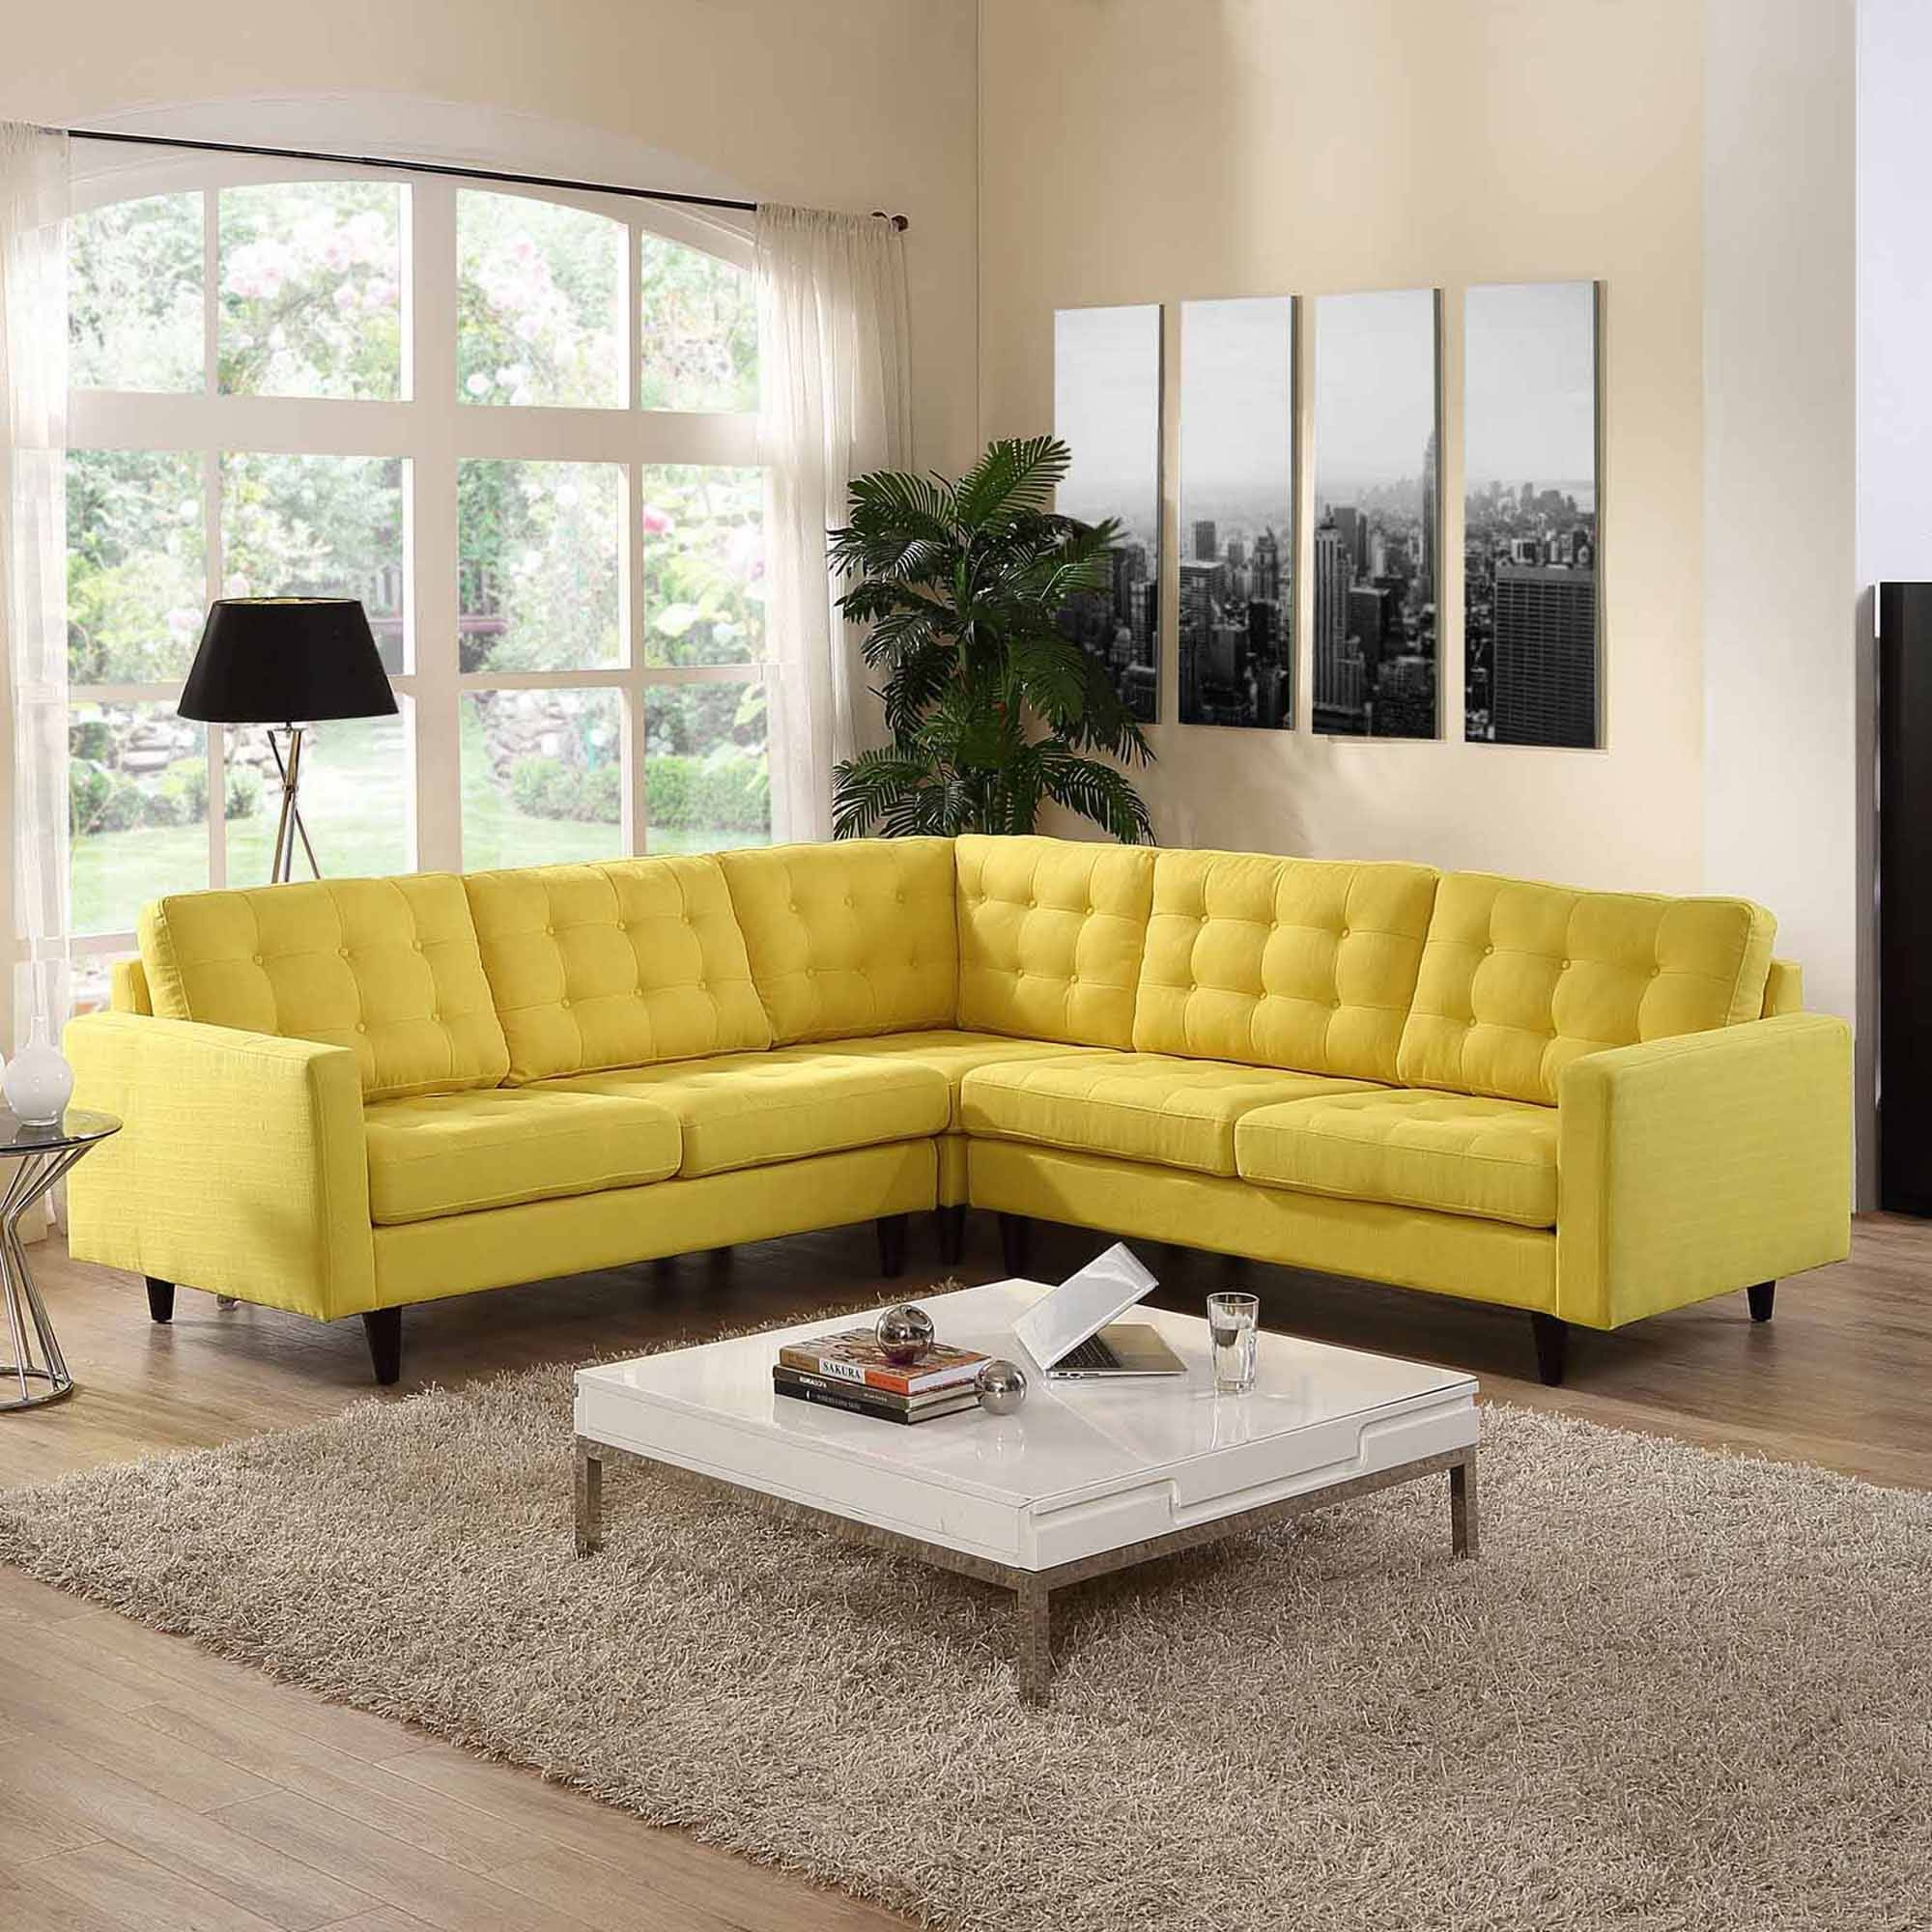 Sectional Sofas Richmond Va Hotelsbacau Pertaining To Image 12 Of 15